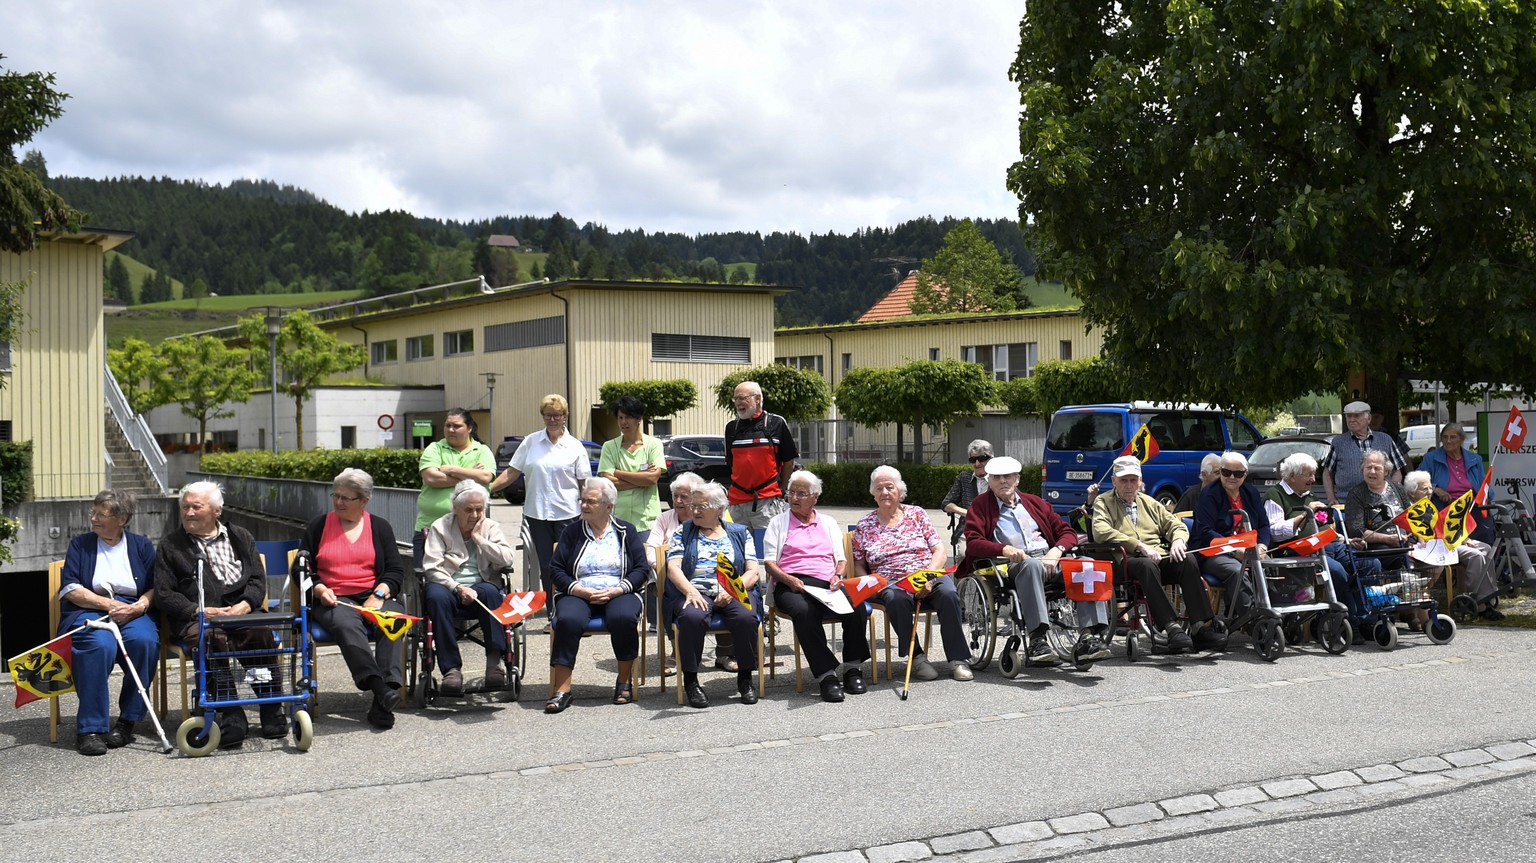 Spectators await the arrival of the peloton during the second stage, a 159.9 km circuit race with start and finish in Langnau im Emmental, Switzerland, at the 83rd Tour de Suisse UCI ProTour cycling race, on Sunday, June 16, 2019. (KEYSTONE/Gian Ehrenzeller)